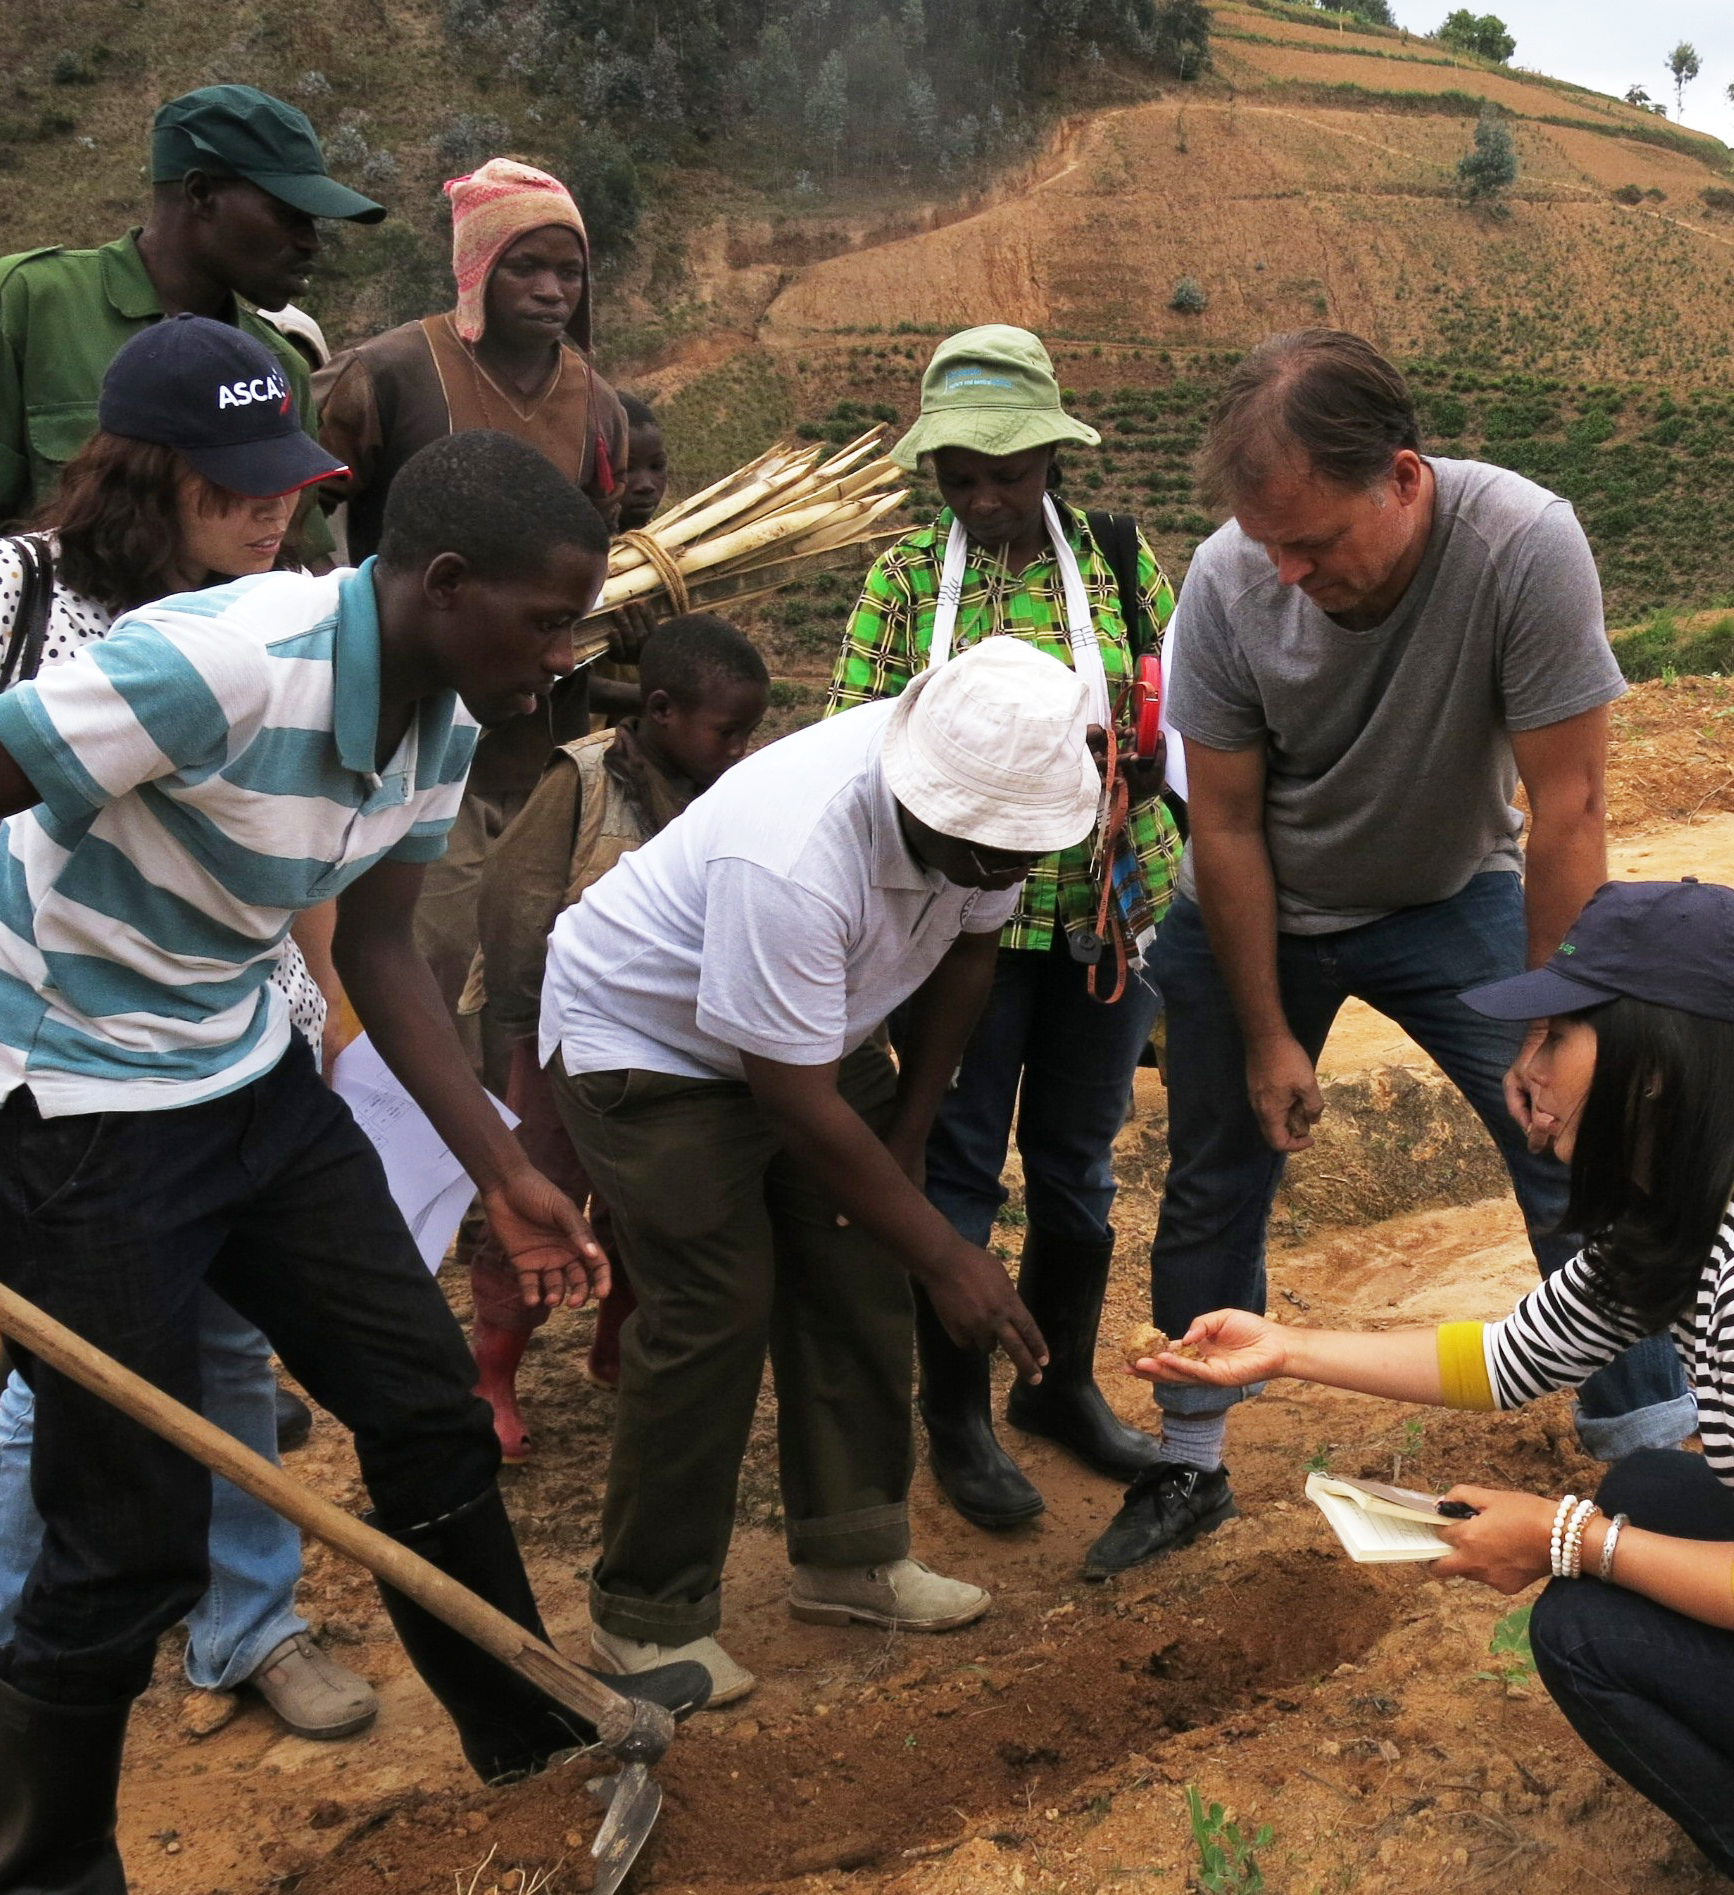 A Research Challenge Fund Project led by CABI in Rwanda